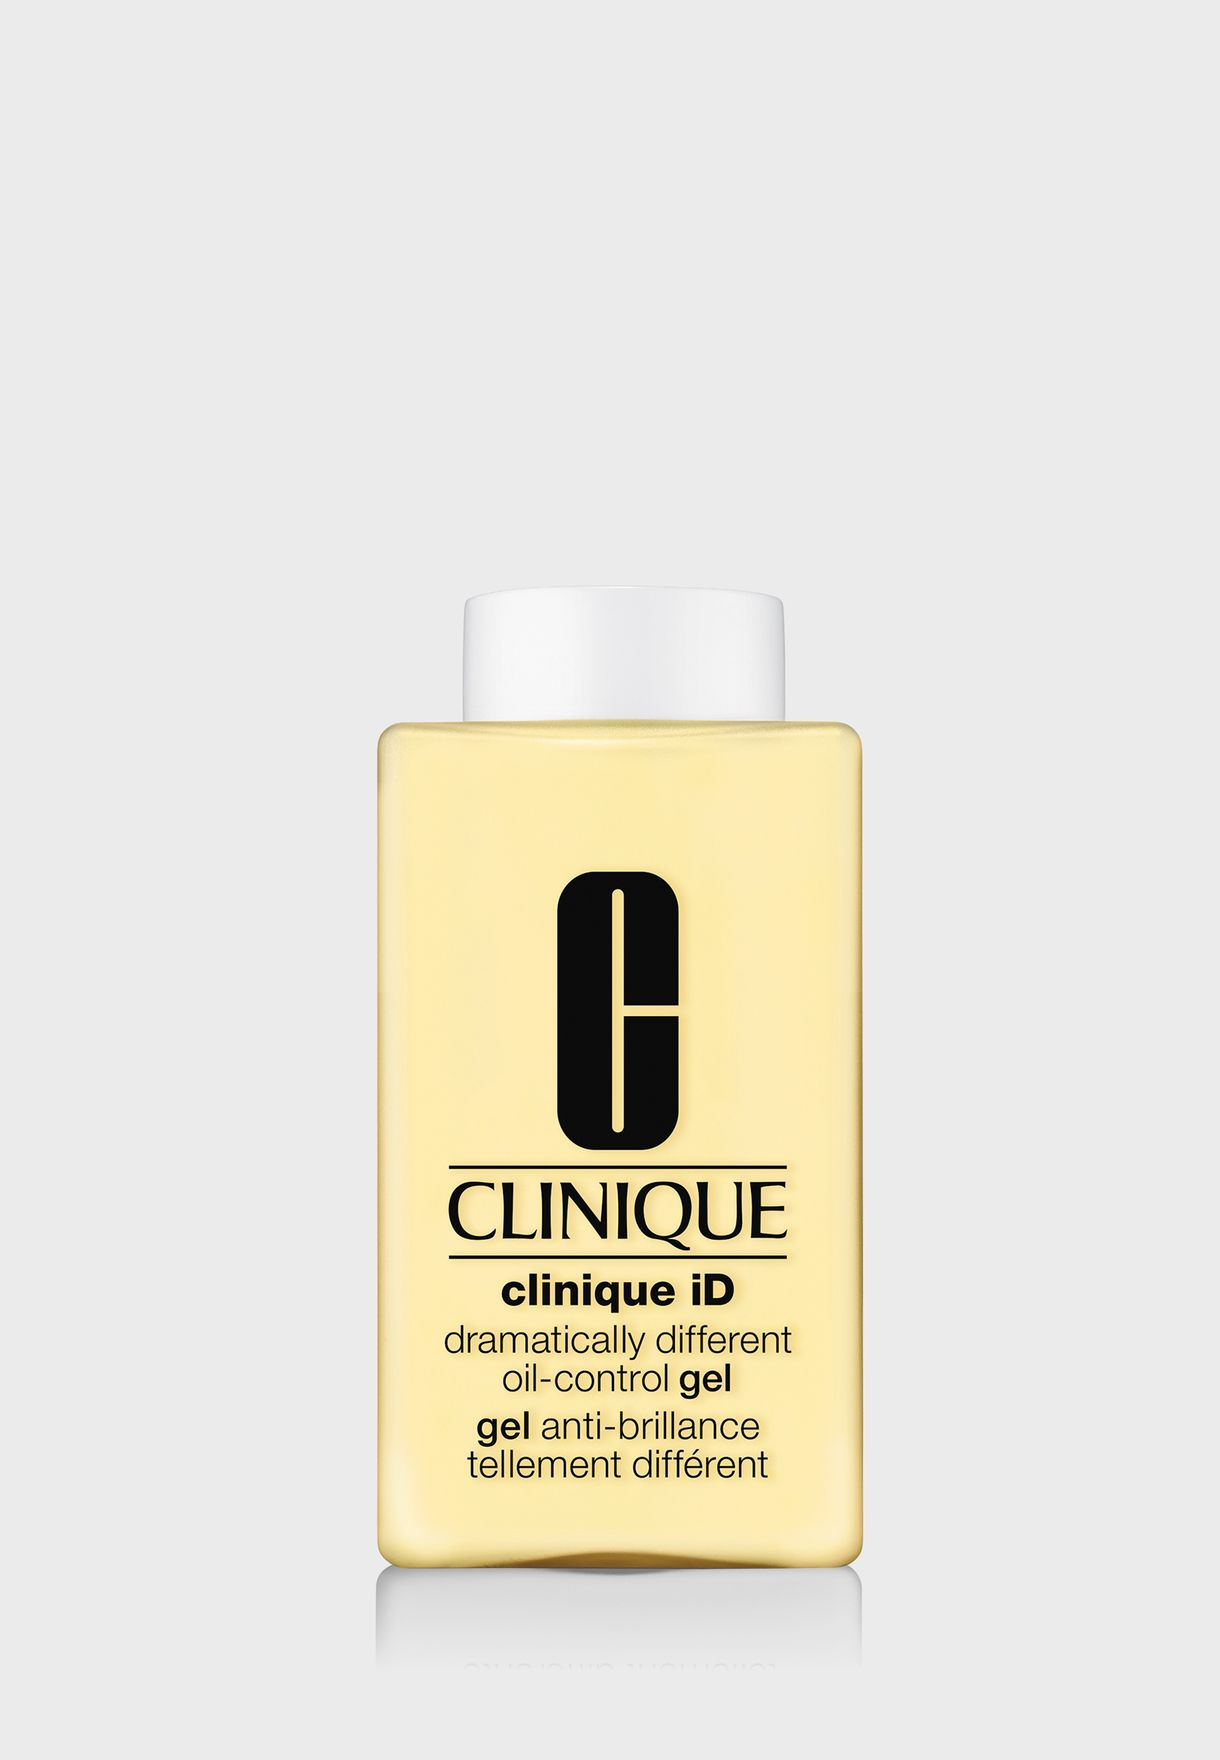 Clinique ID Oil-control Gel for Lines & Wrinkles